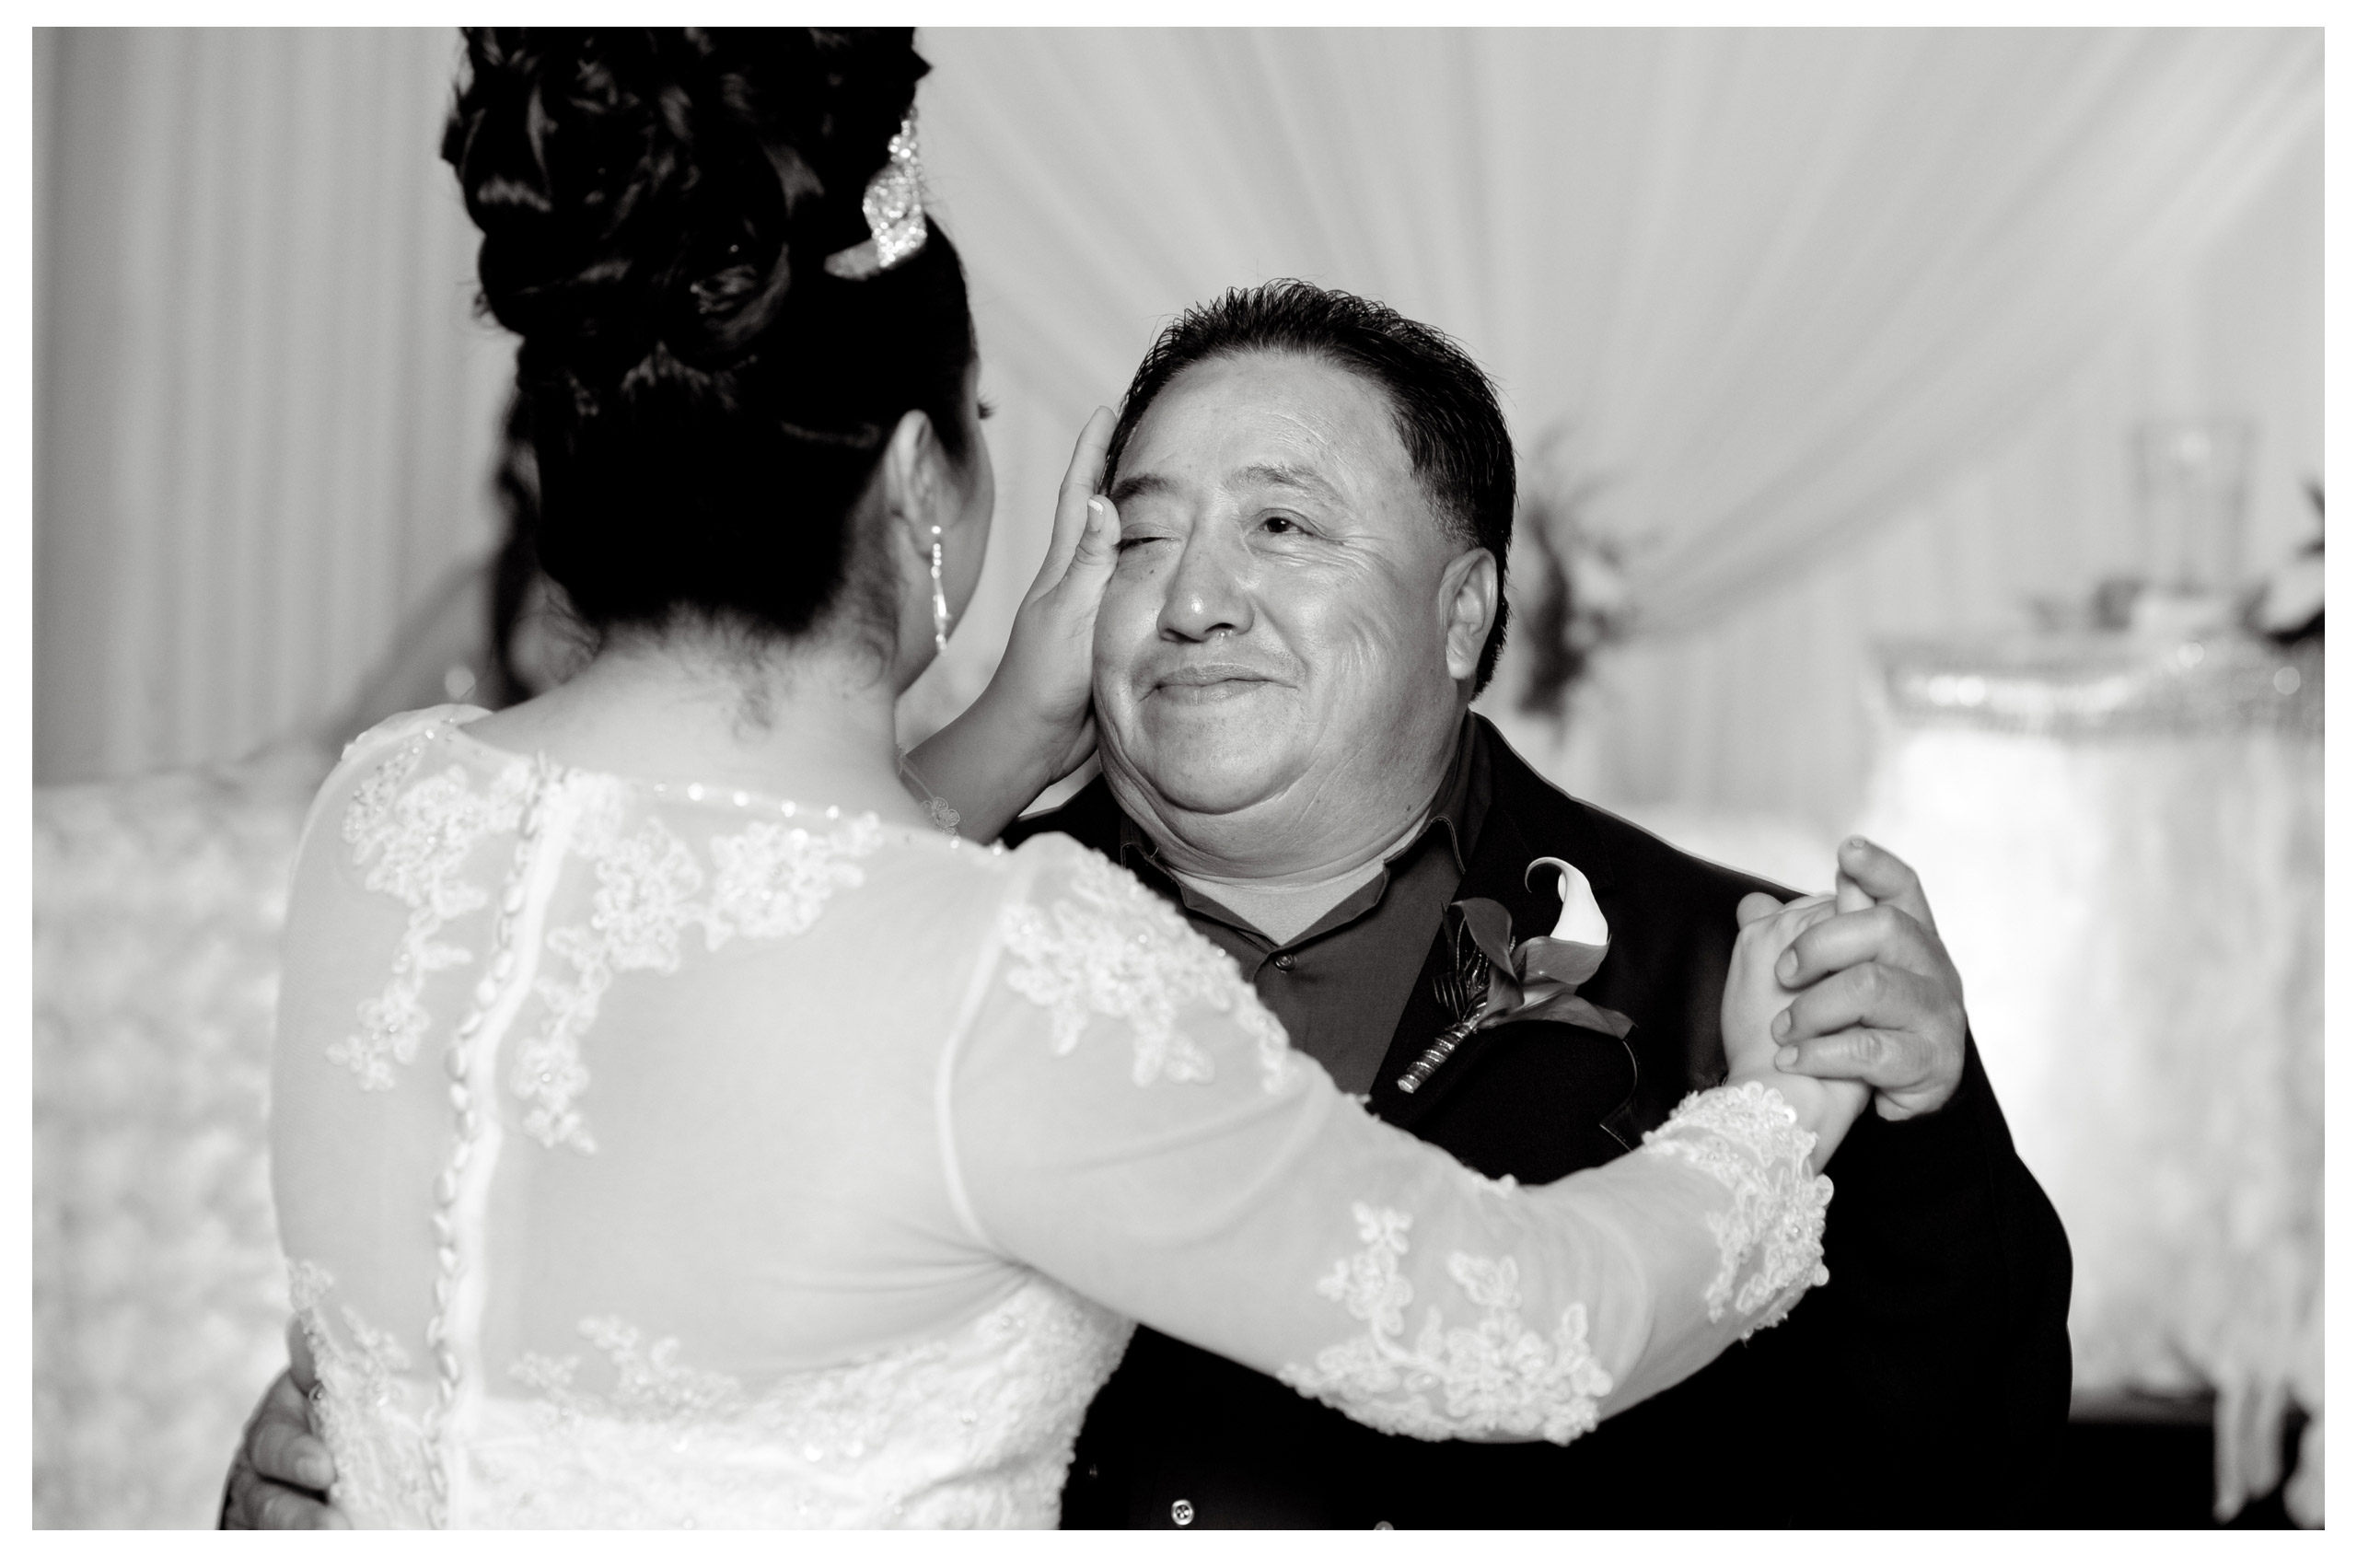 michigan wedding photographer takes photojournalists photos of a bride wiping a tear from her father's cheek during their father daughter dance in this Mexican wedding in Detroit, Michigan.